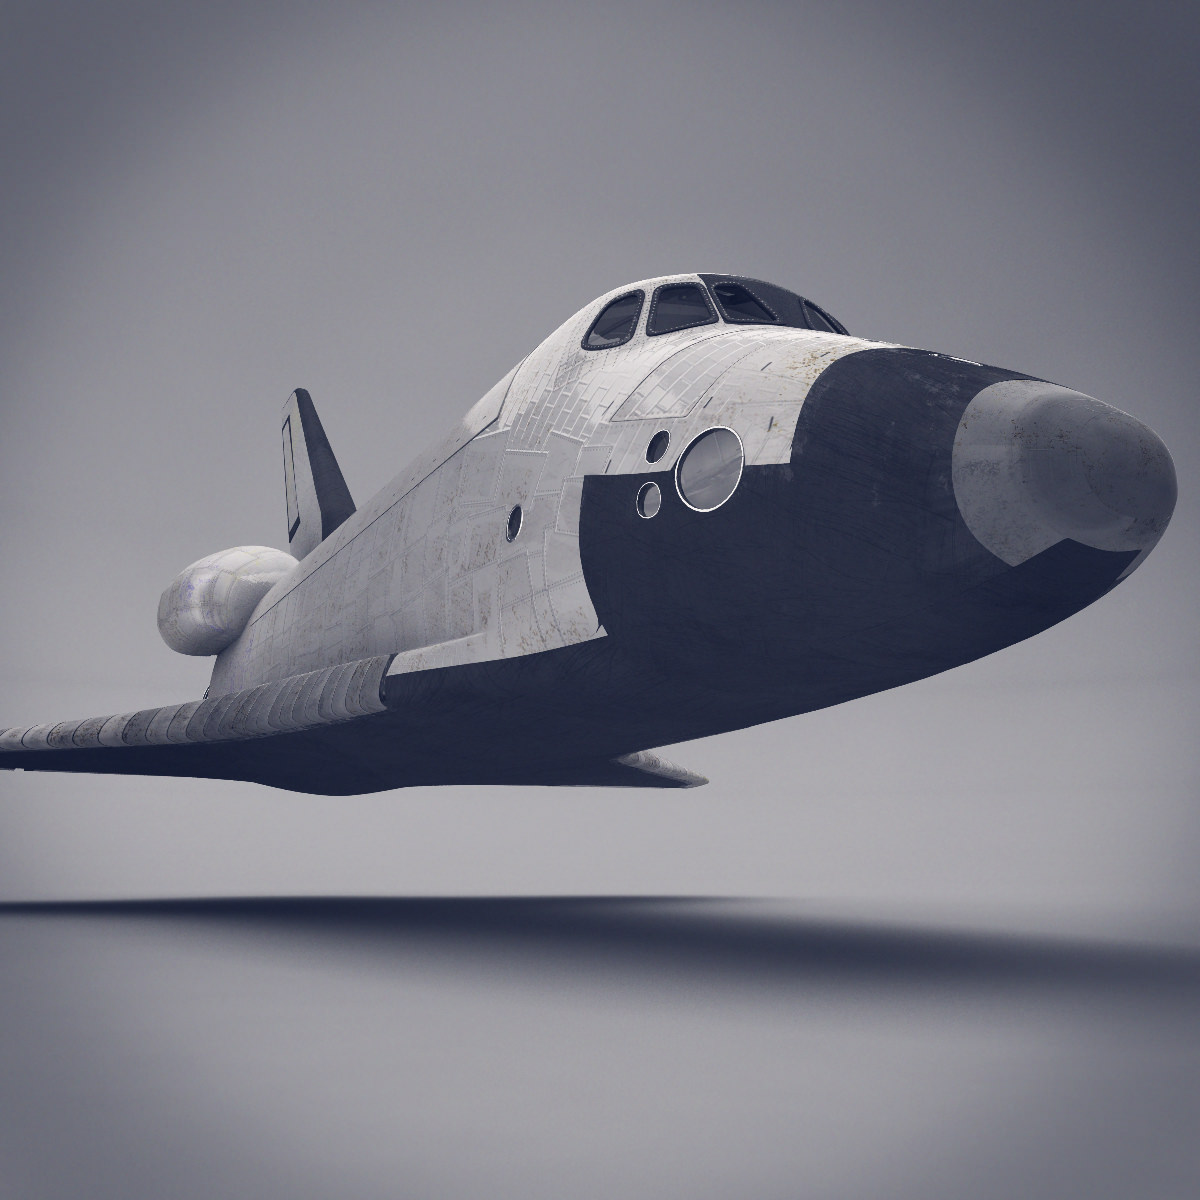 make a space shuttle model-#46